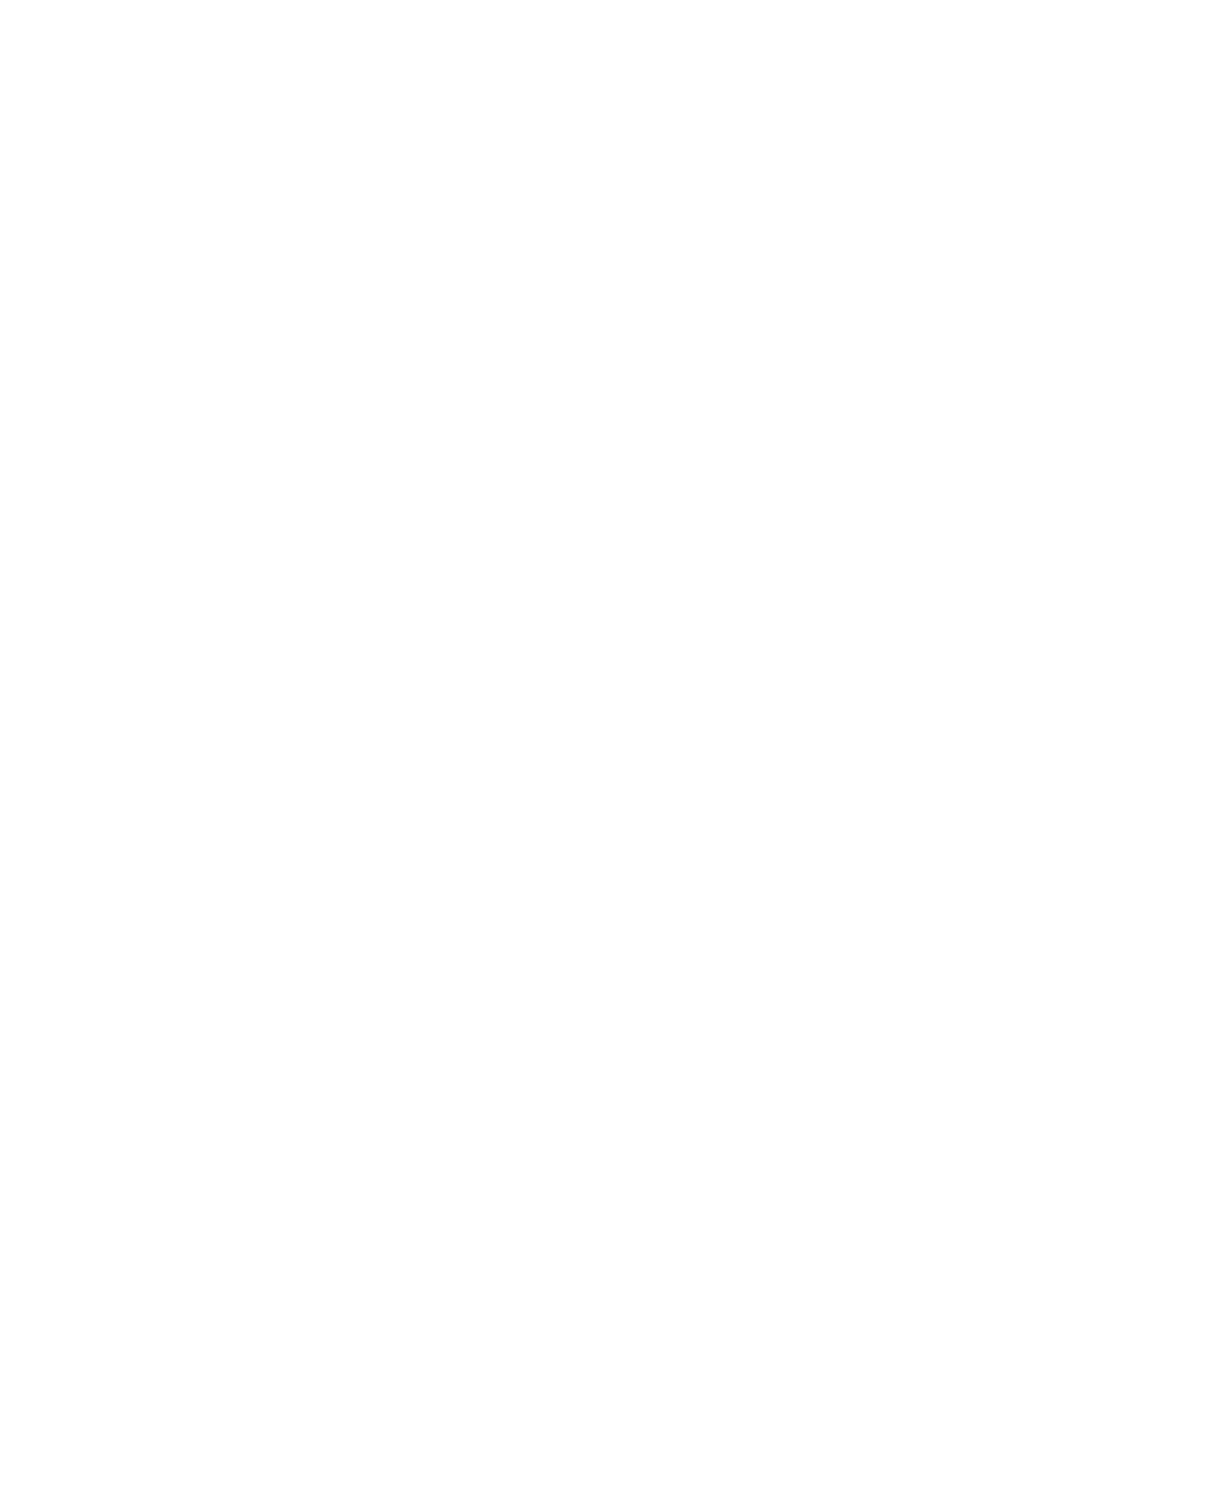 Alina s cakes cookies. Clipart cupcake black and white